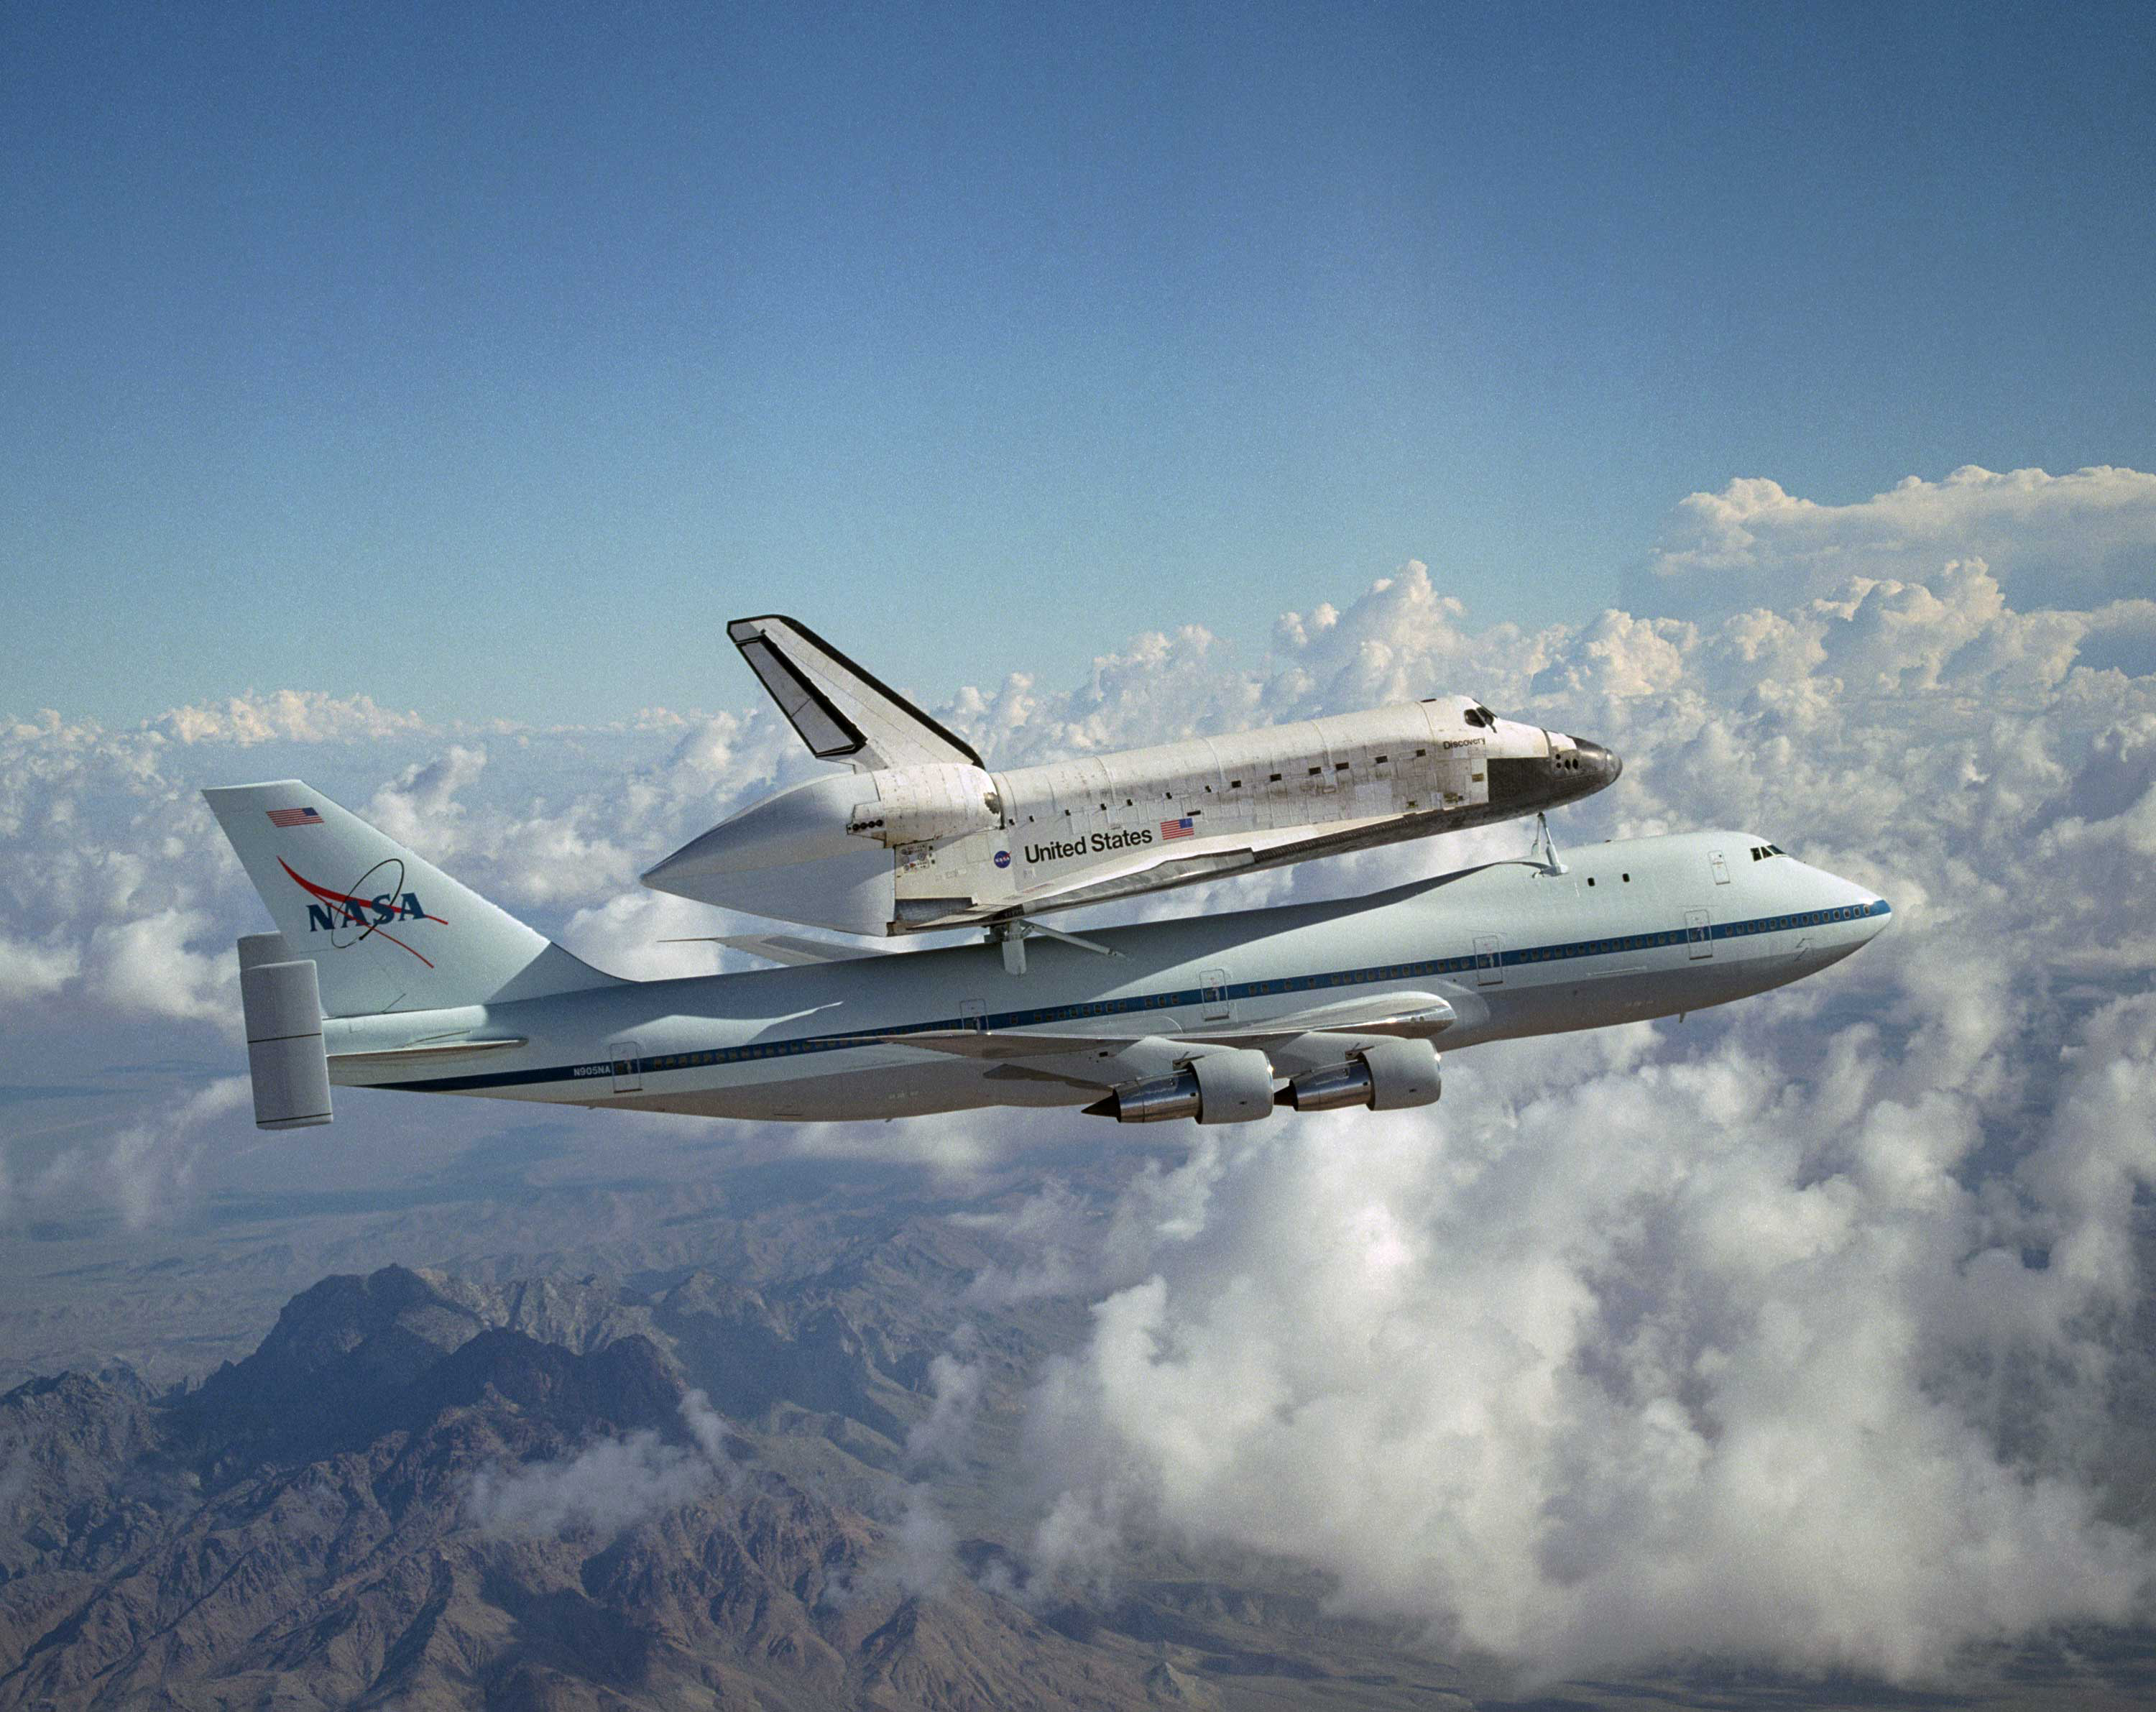 nasa new space ship - photo #27